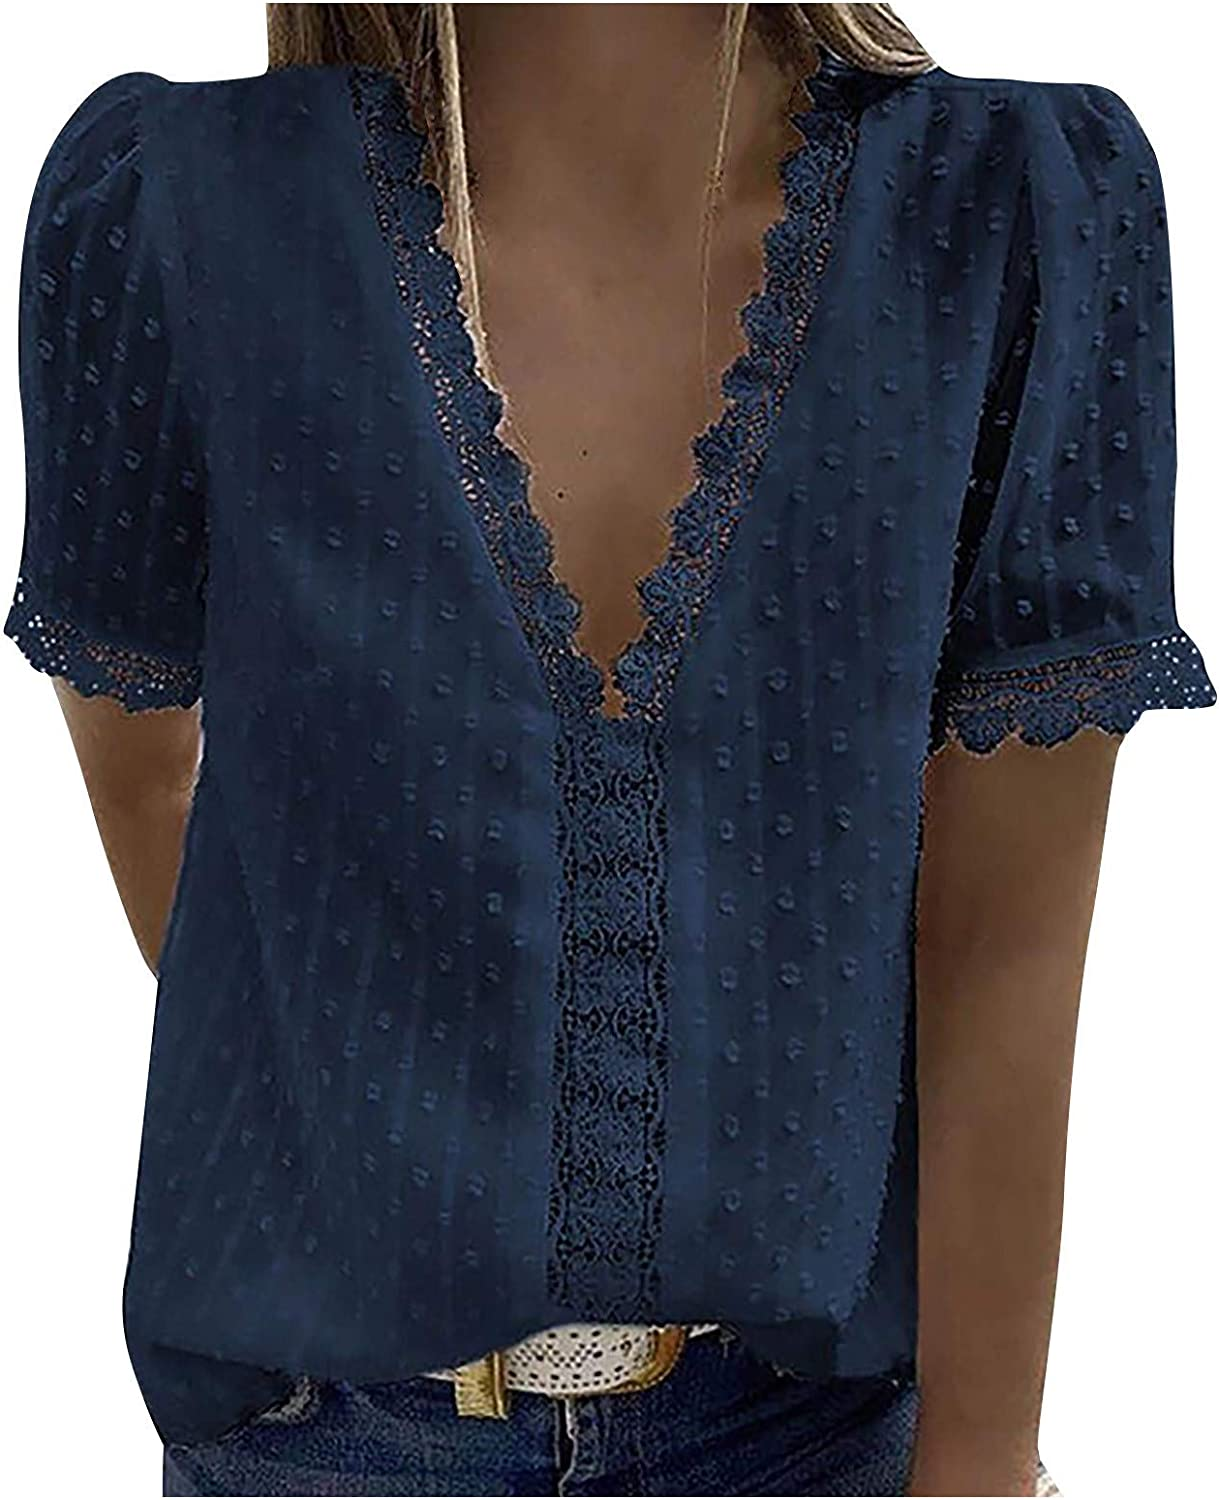 Aukbays Summer Tops for Women, Womens Lace Crochet Sexy V Neck Blouses Casual Loose Short Sleeve Soild Color Tees Shirts